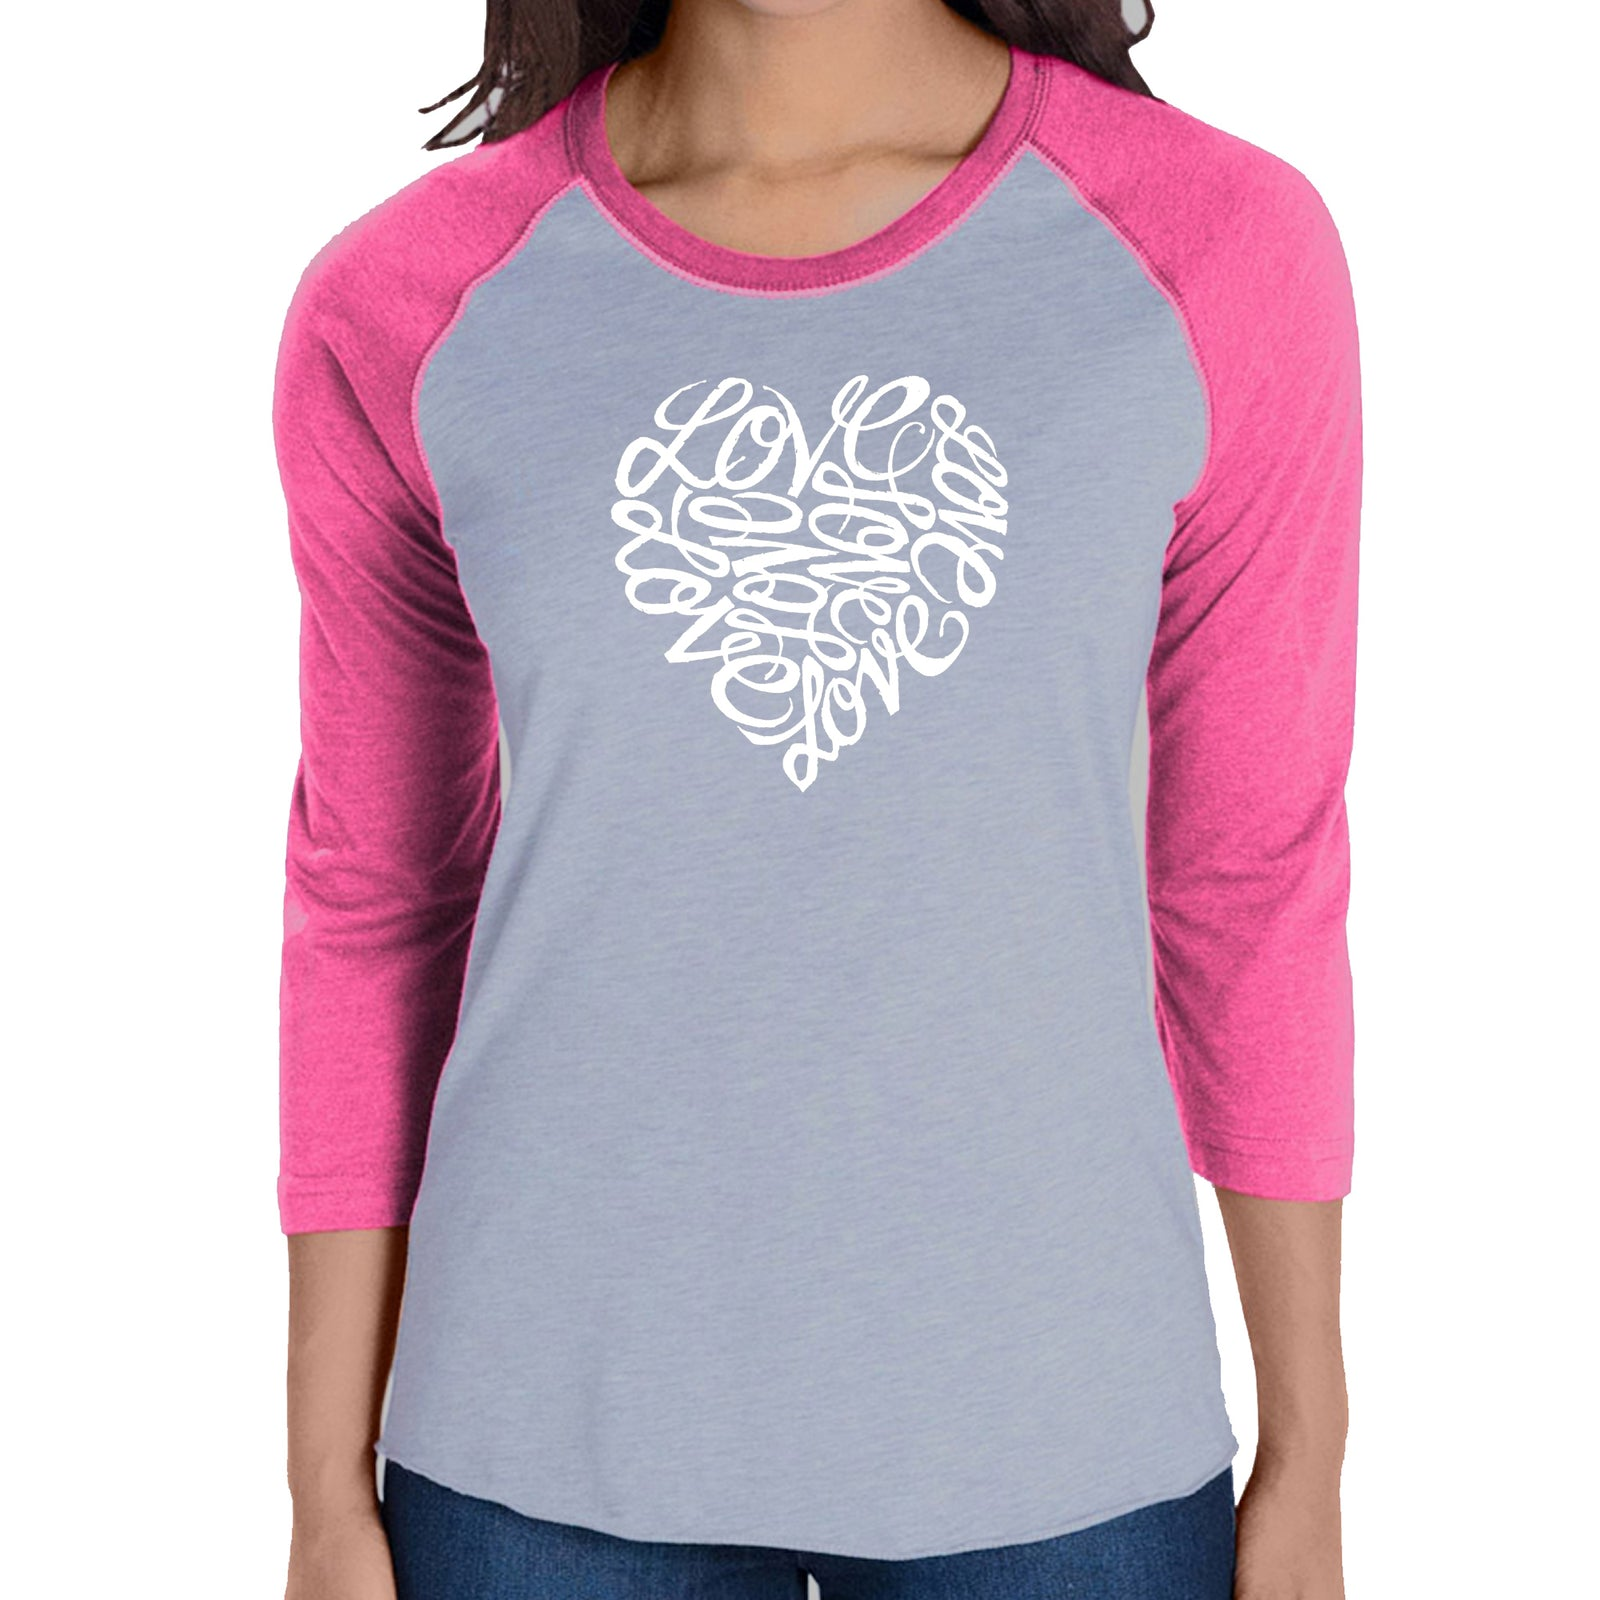 Women's Raglan Baseball Word Art T-shirt - LOVE